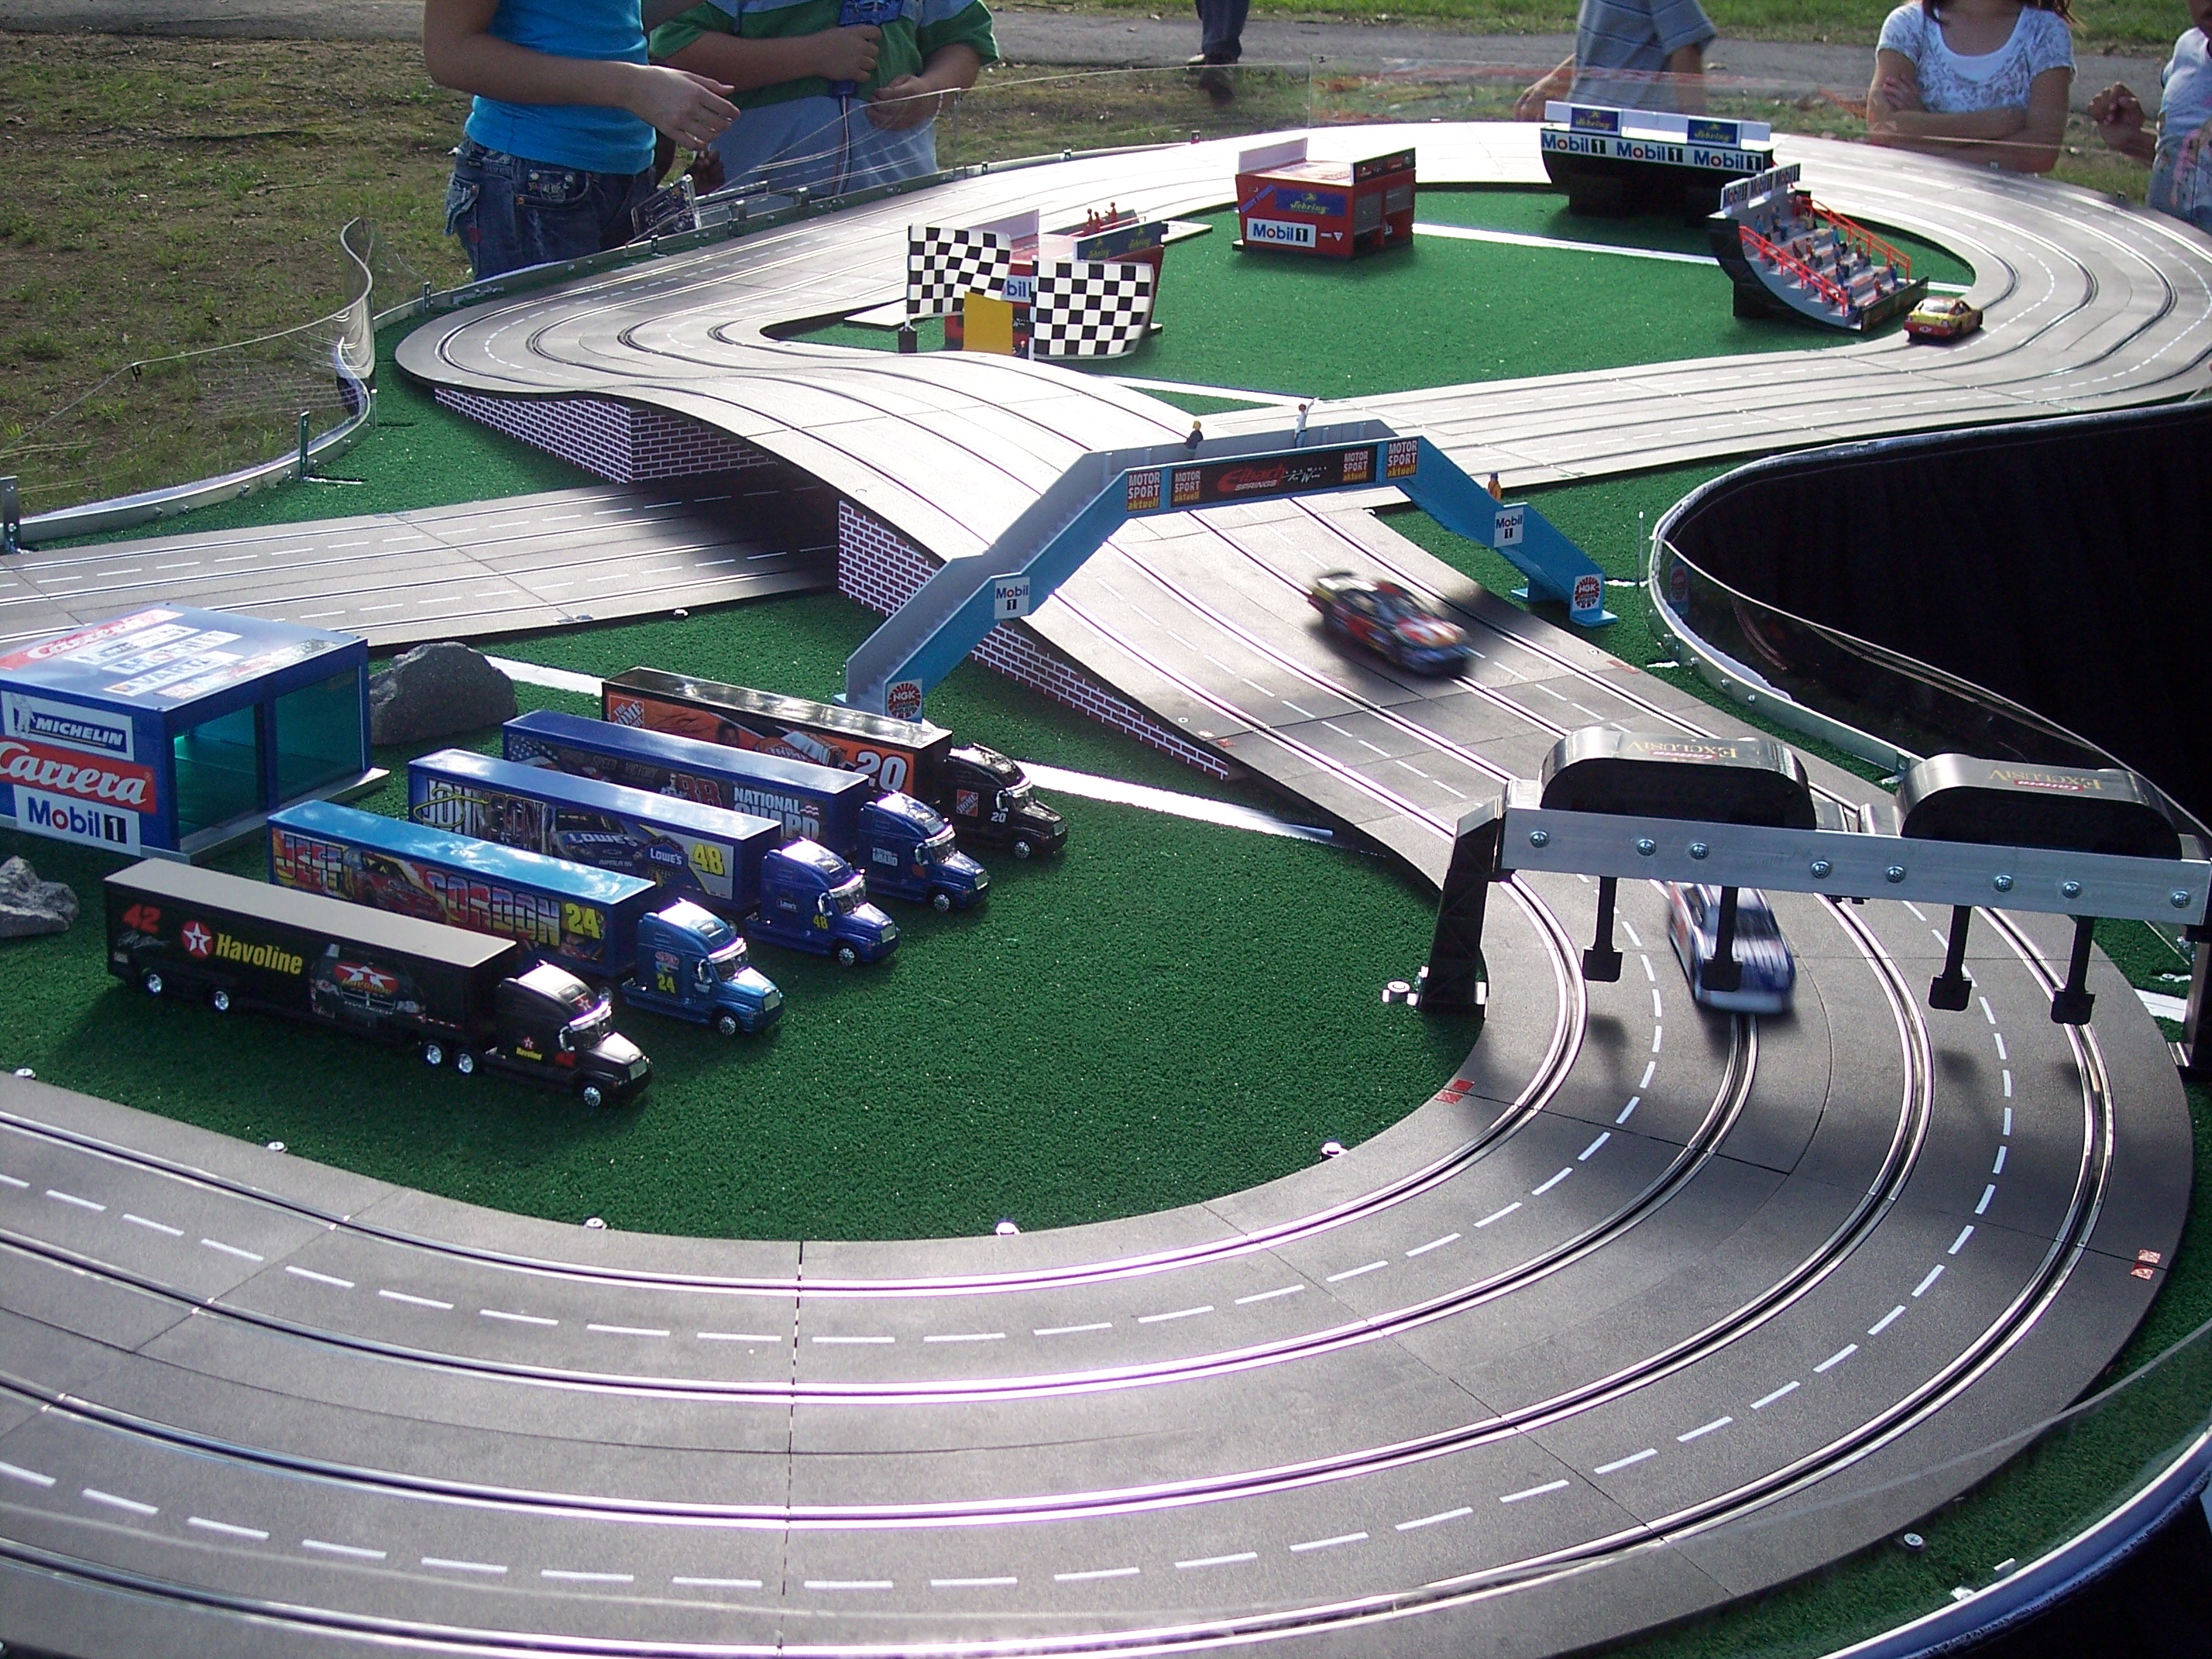 361319011089 further Ptm292 moreover Slotcar Track Based On The Rc Backyard Track Layout likewise Watch furthermore Photo 04. on slot car track building supplies